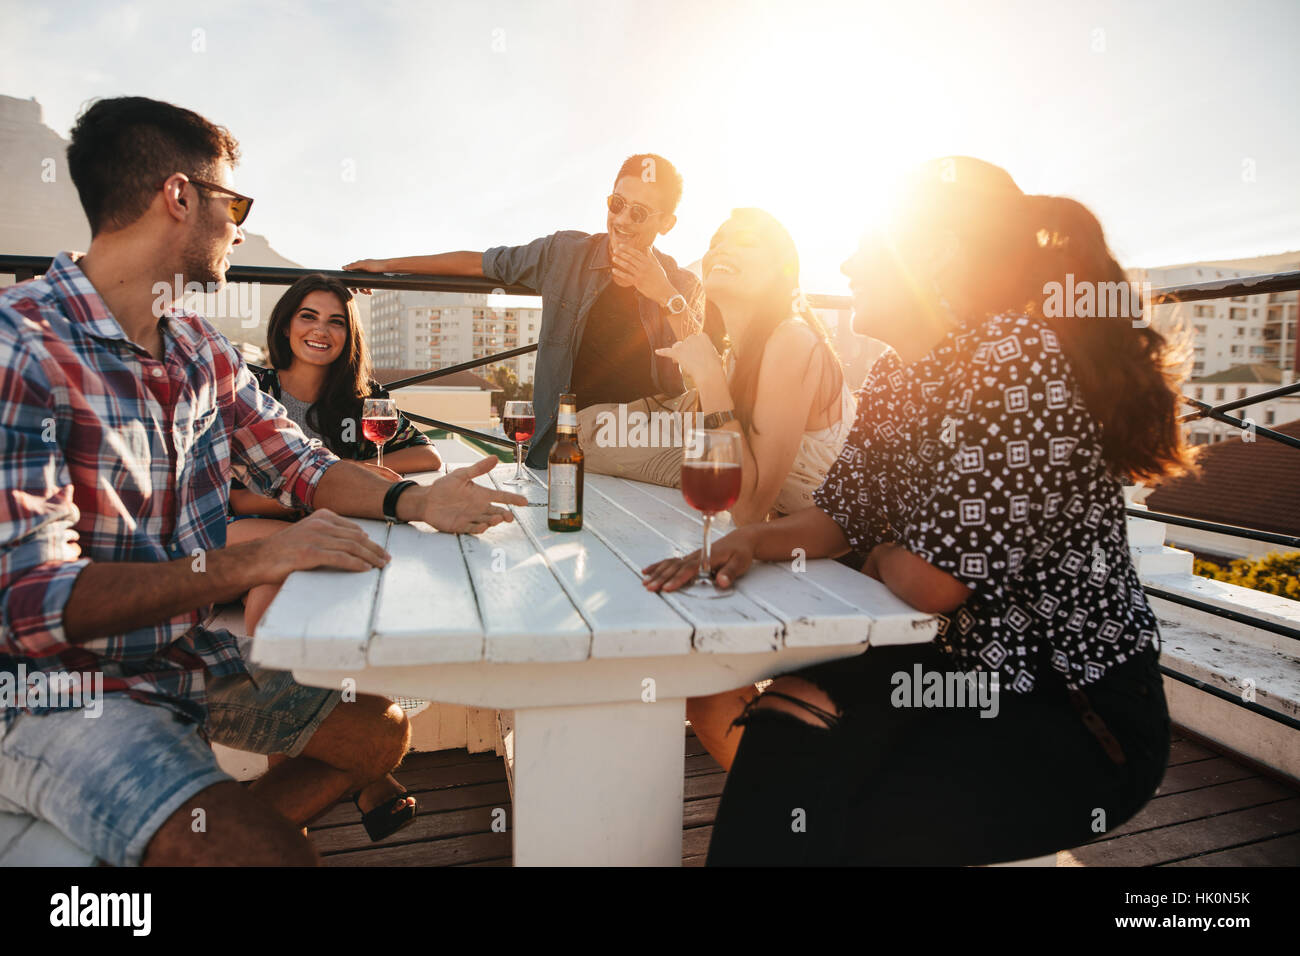 Group of young people sitting around a table  with drinks. Young men and women having rooftop party in evening. - Stock Image